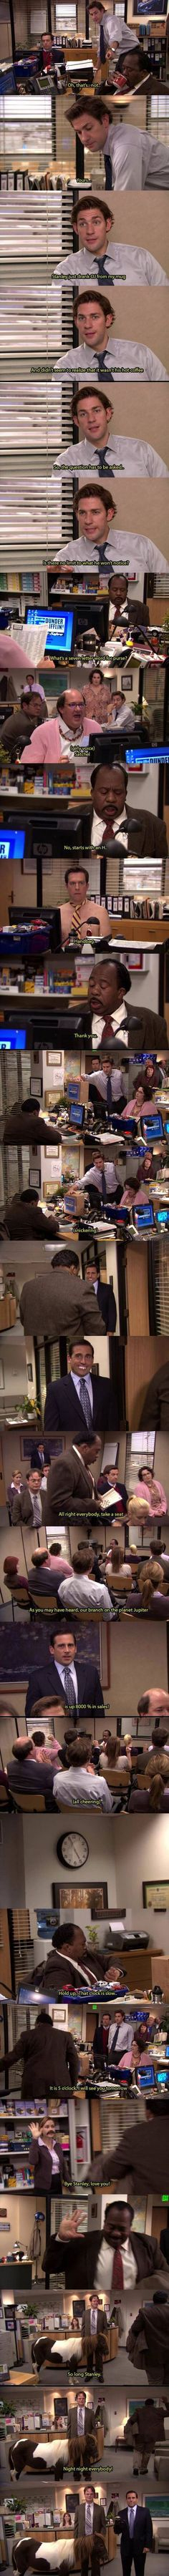 One of my favorite scenes from The Office